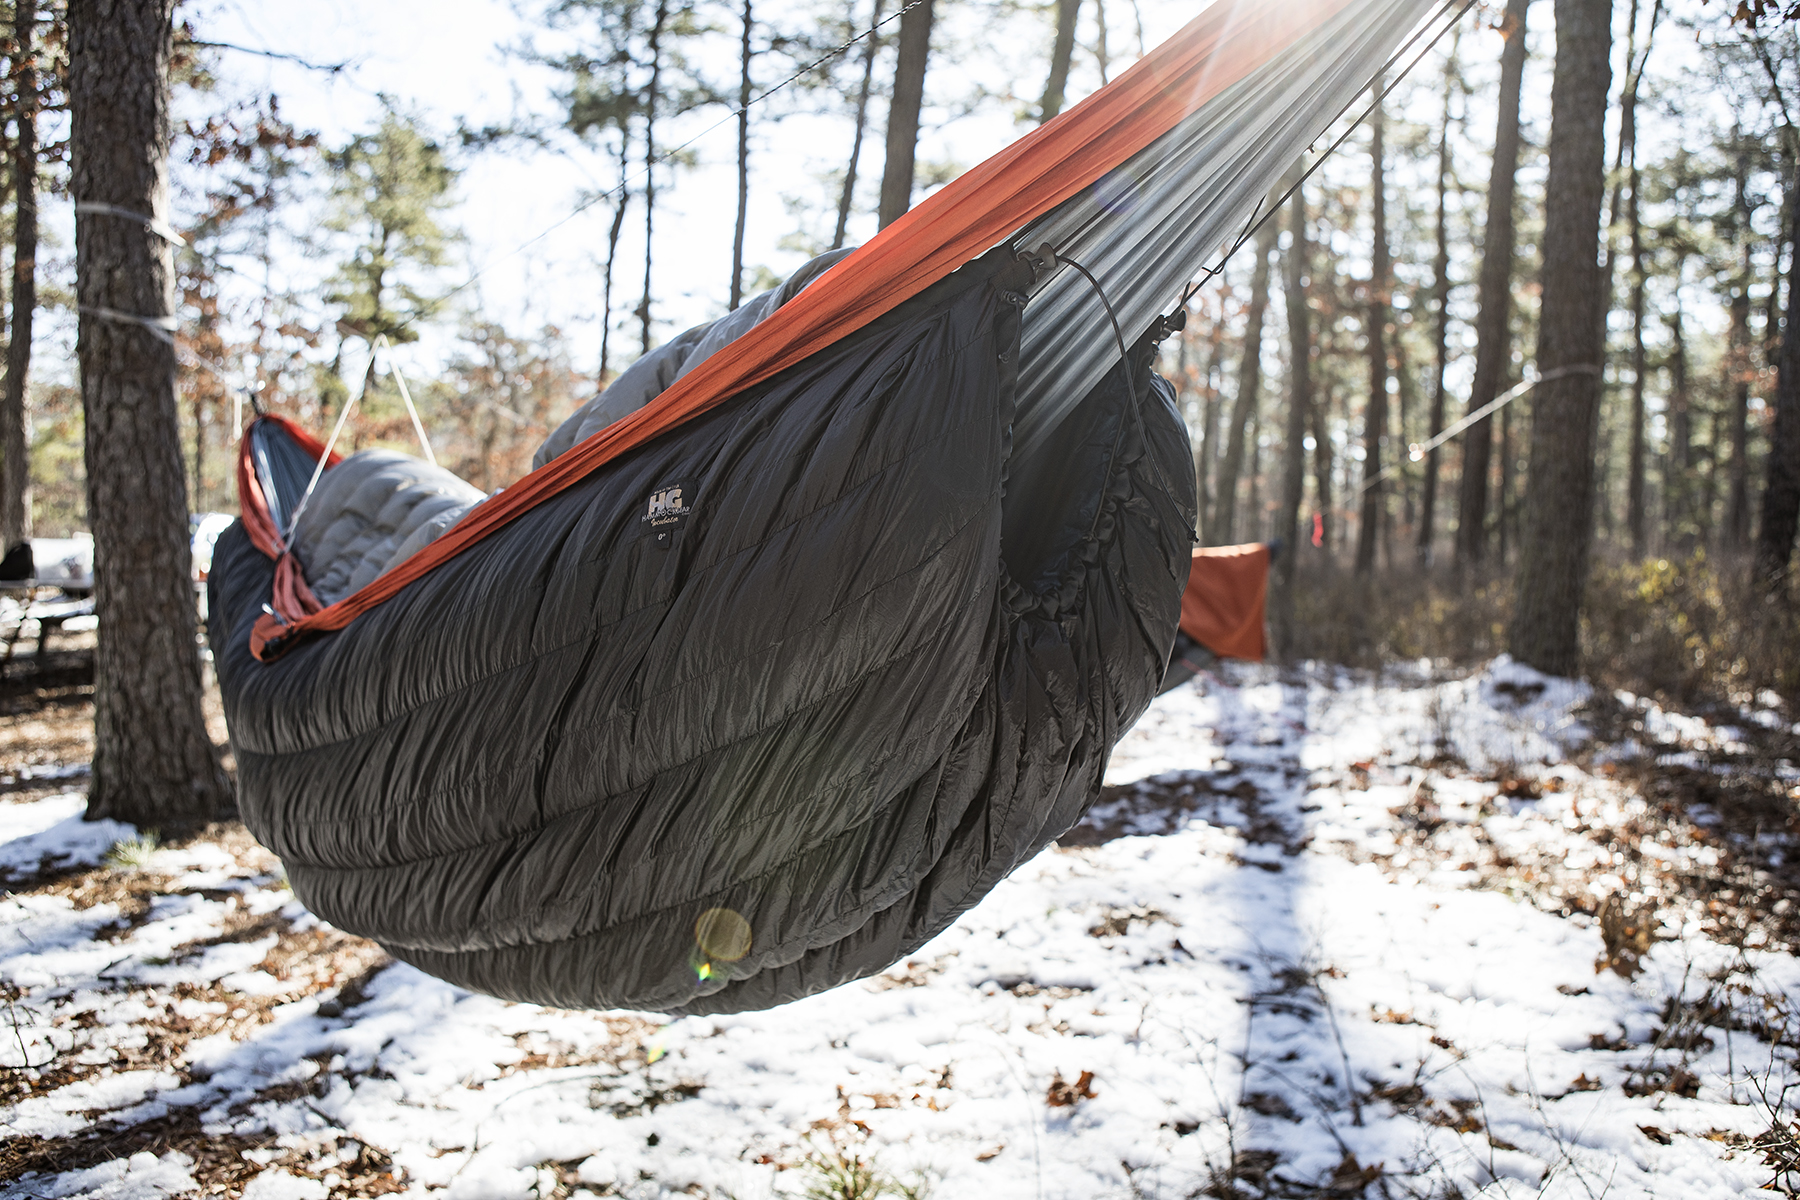 My down cocoon kept me nice and toasty.